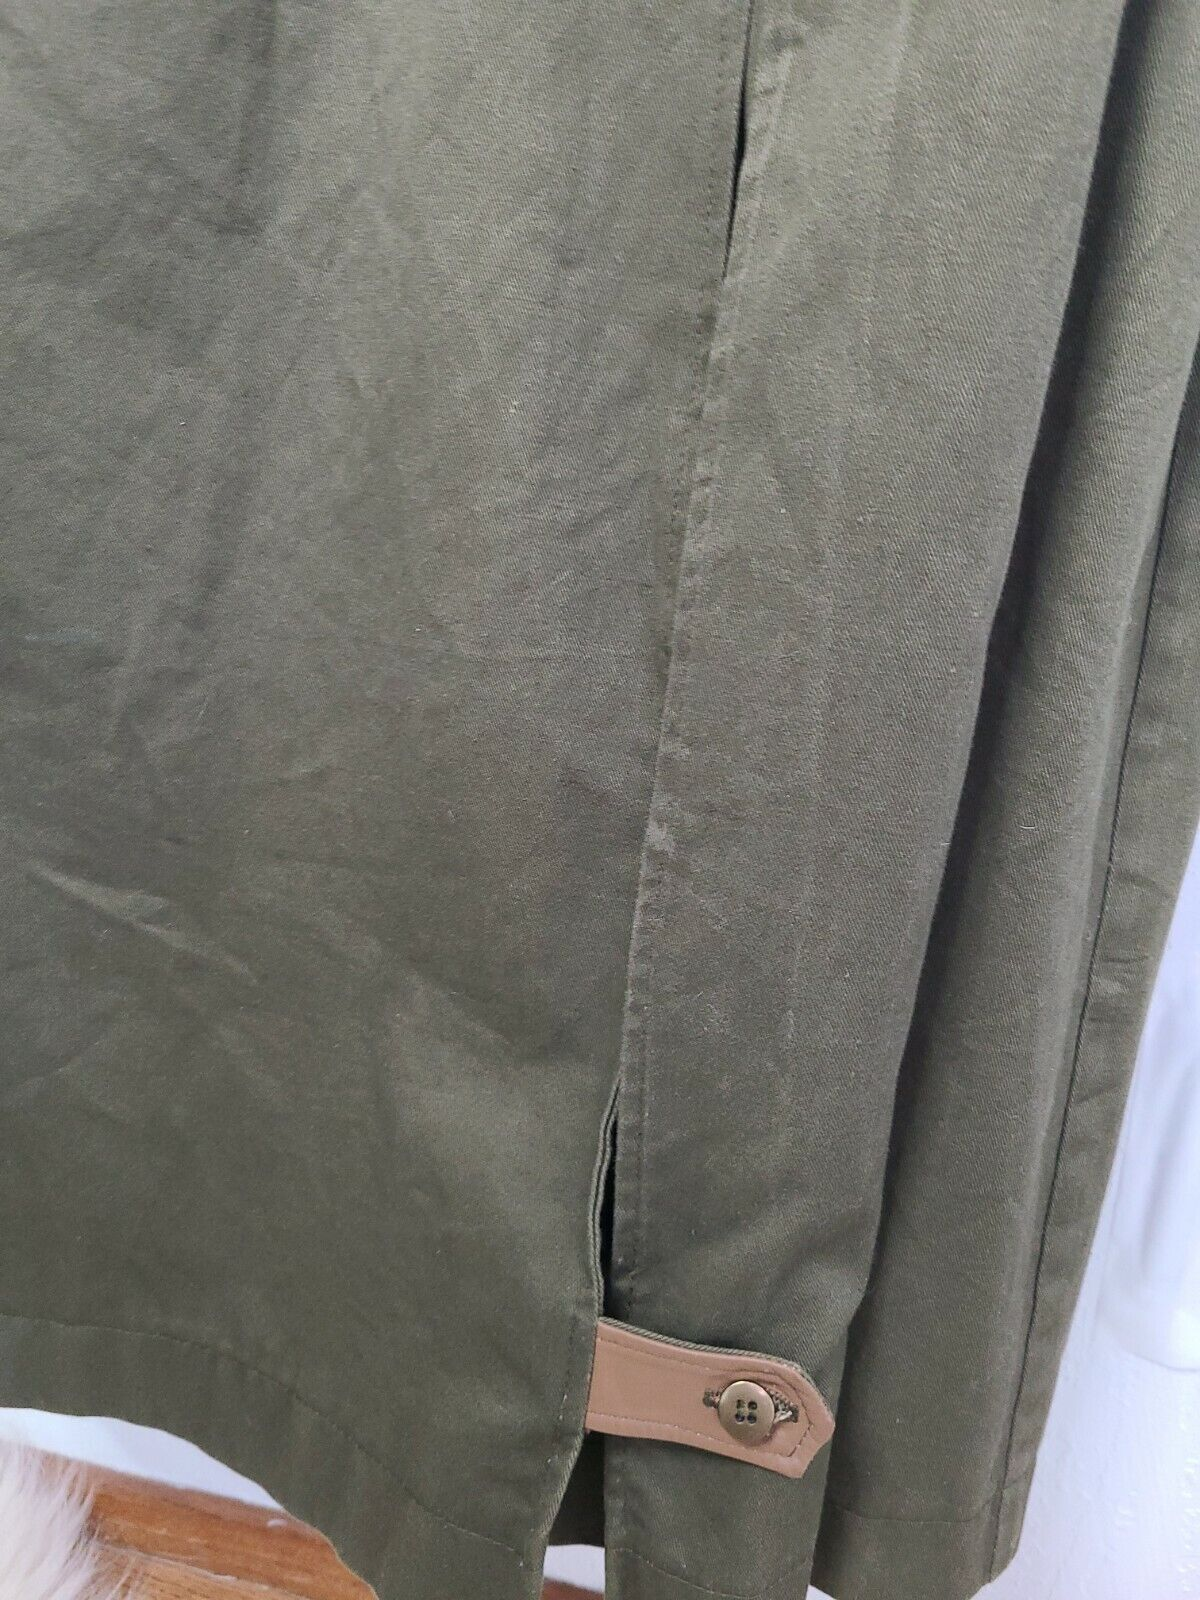 Classic Military Style Trench Coat, Olive Army Gr… - image 9